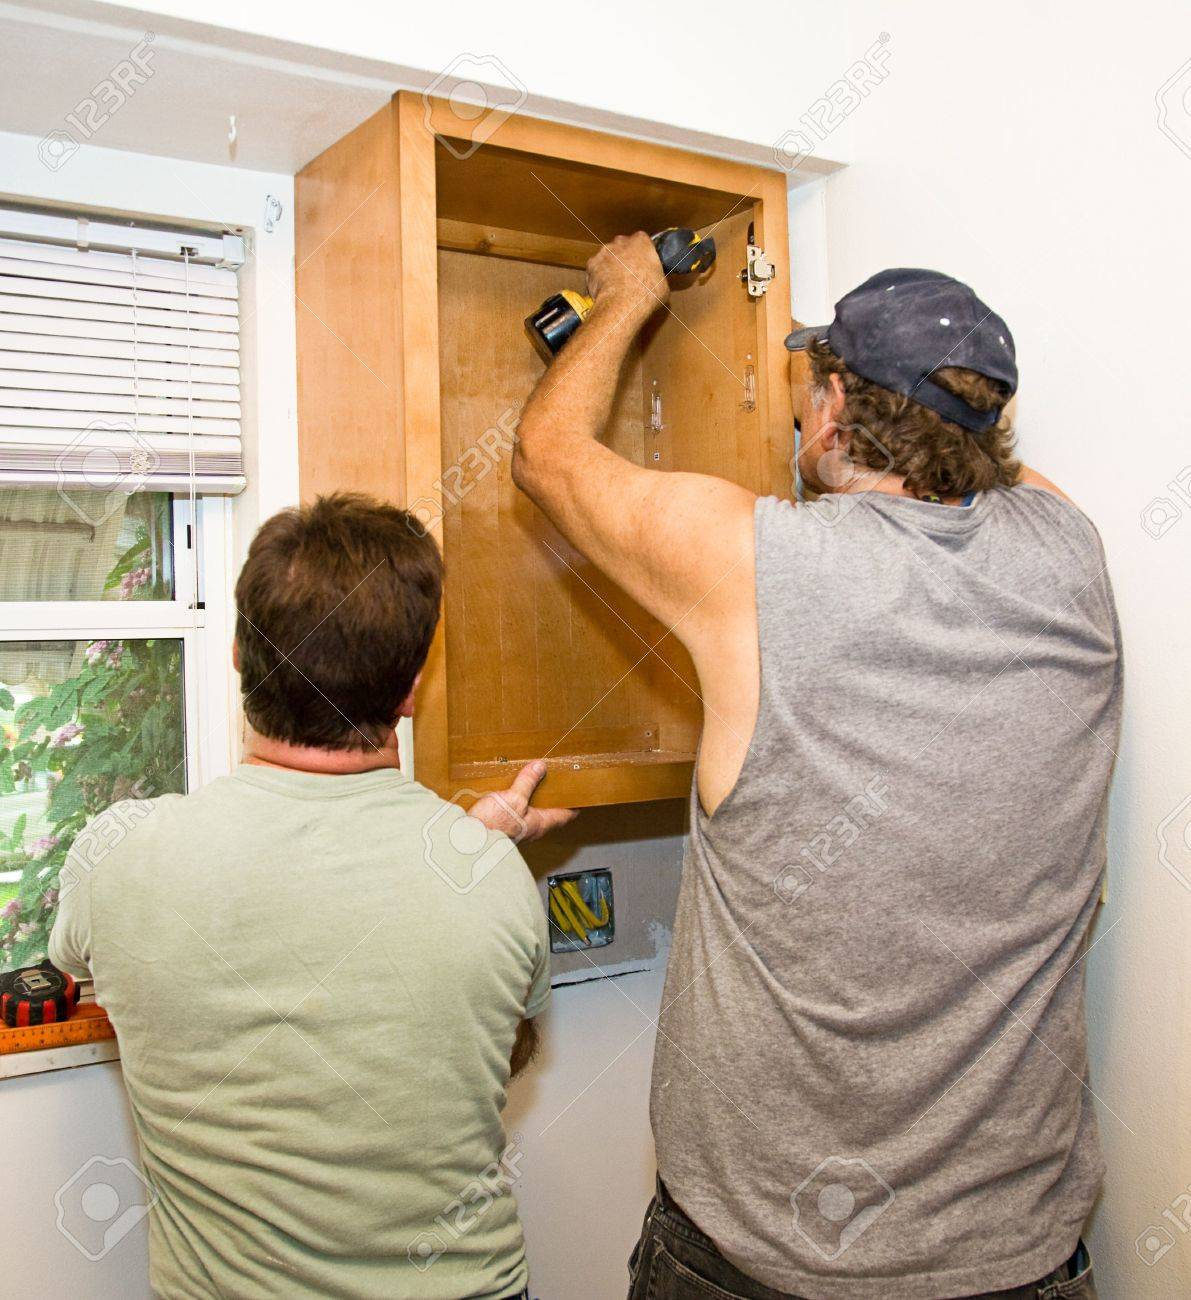 3766948 Carpenter and helper installing kitchen cabinets together  Stock Photo